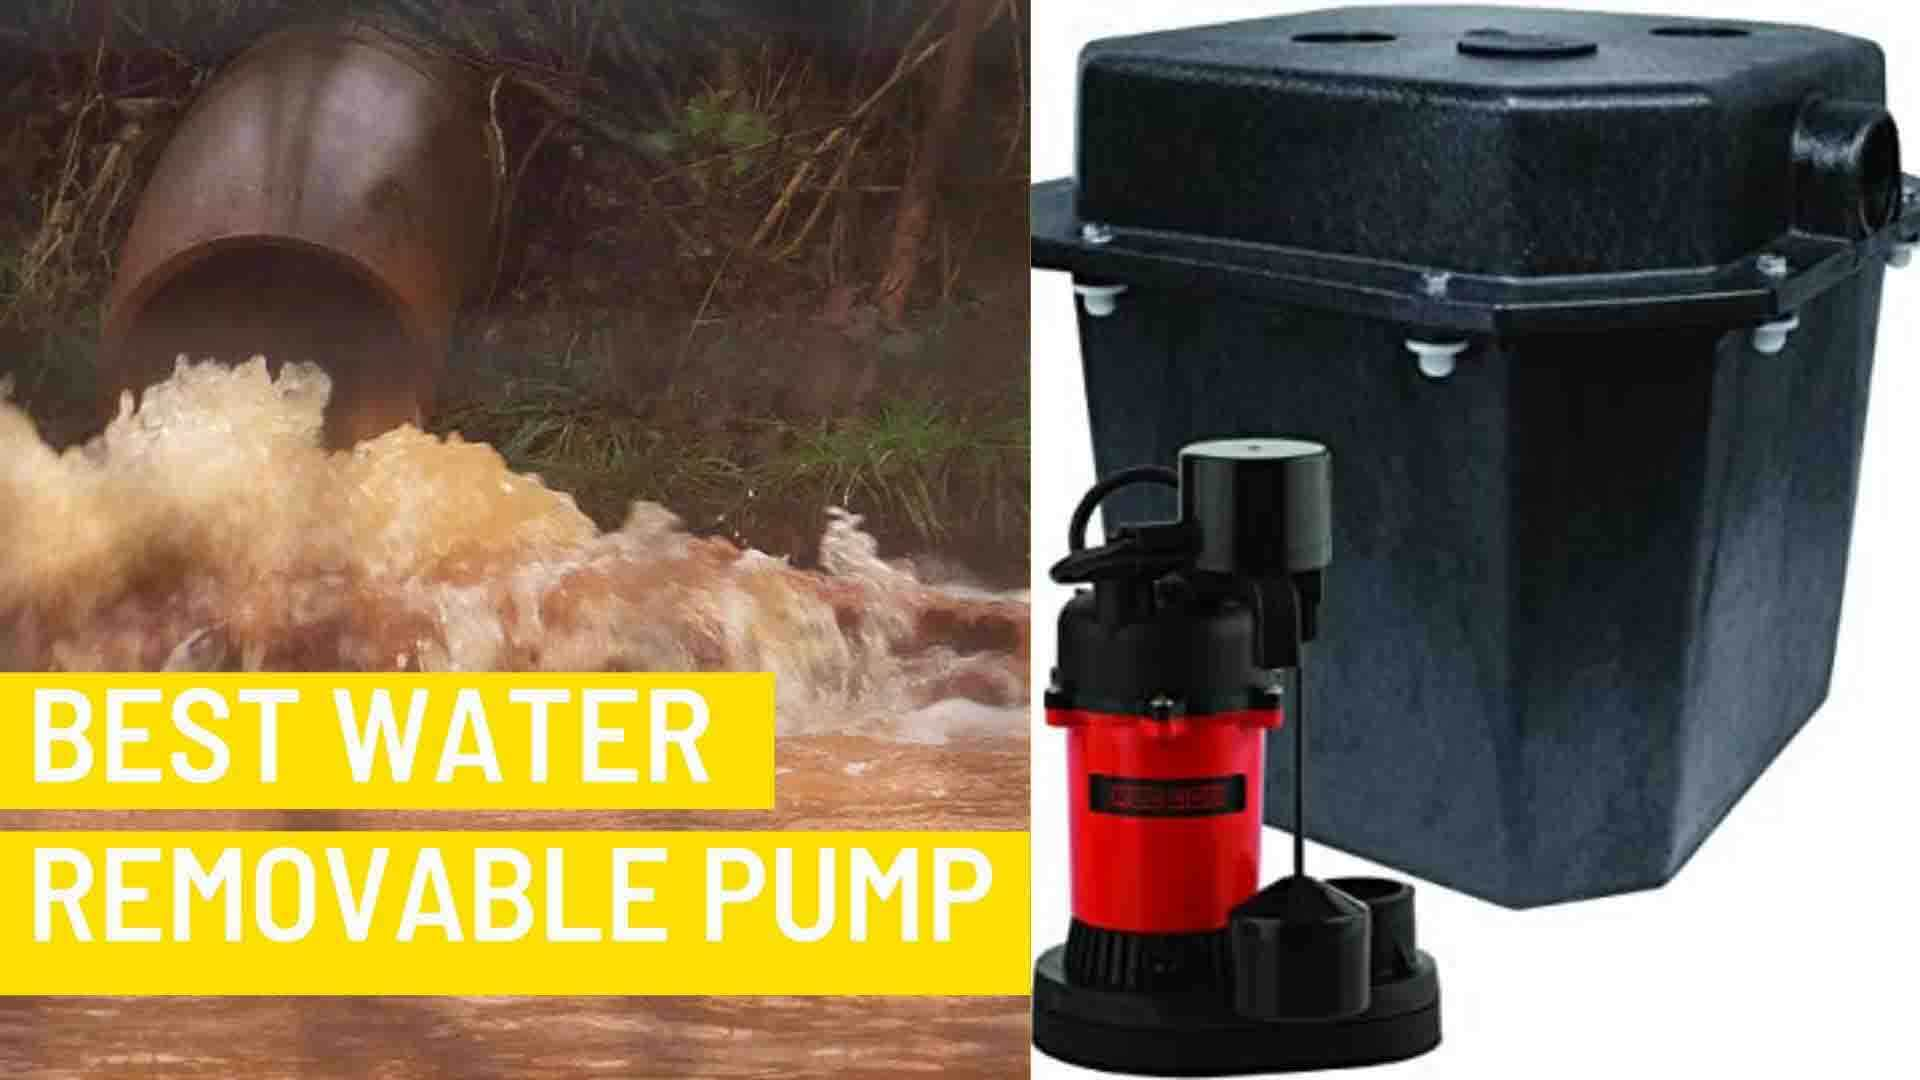 Best Water Removal Pump Red Lion RL-SPS33 1/4 HP